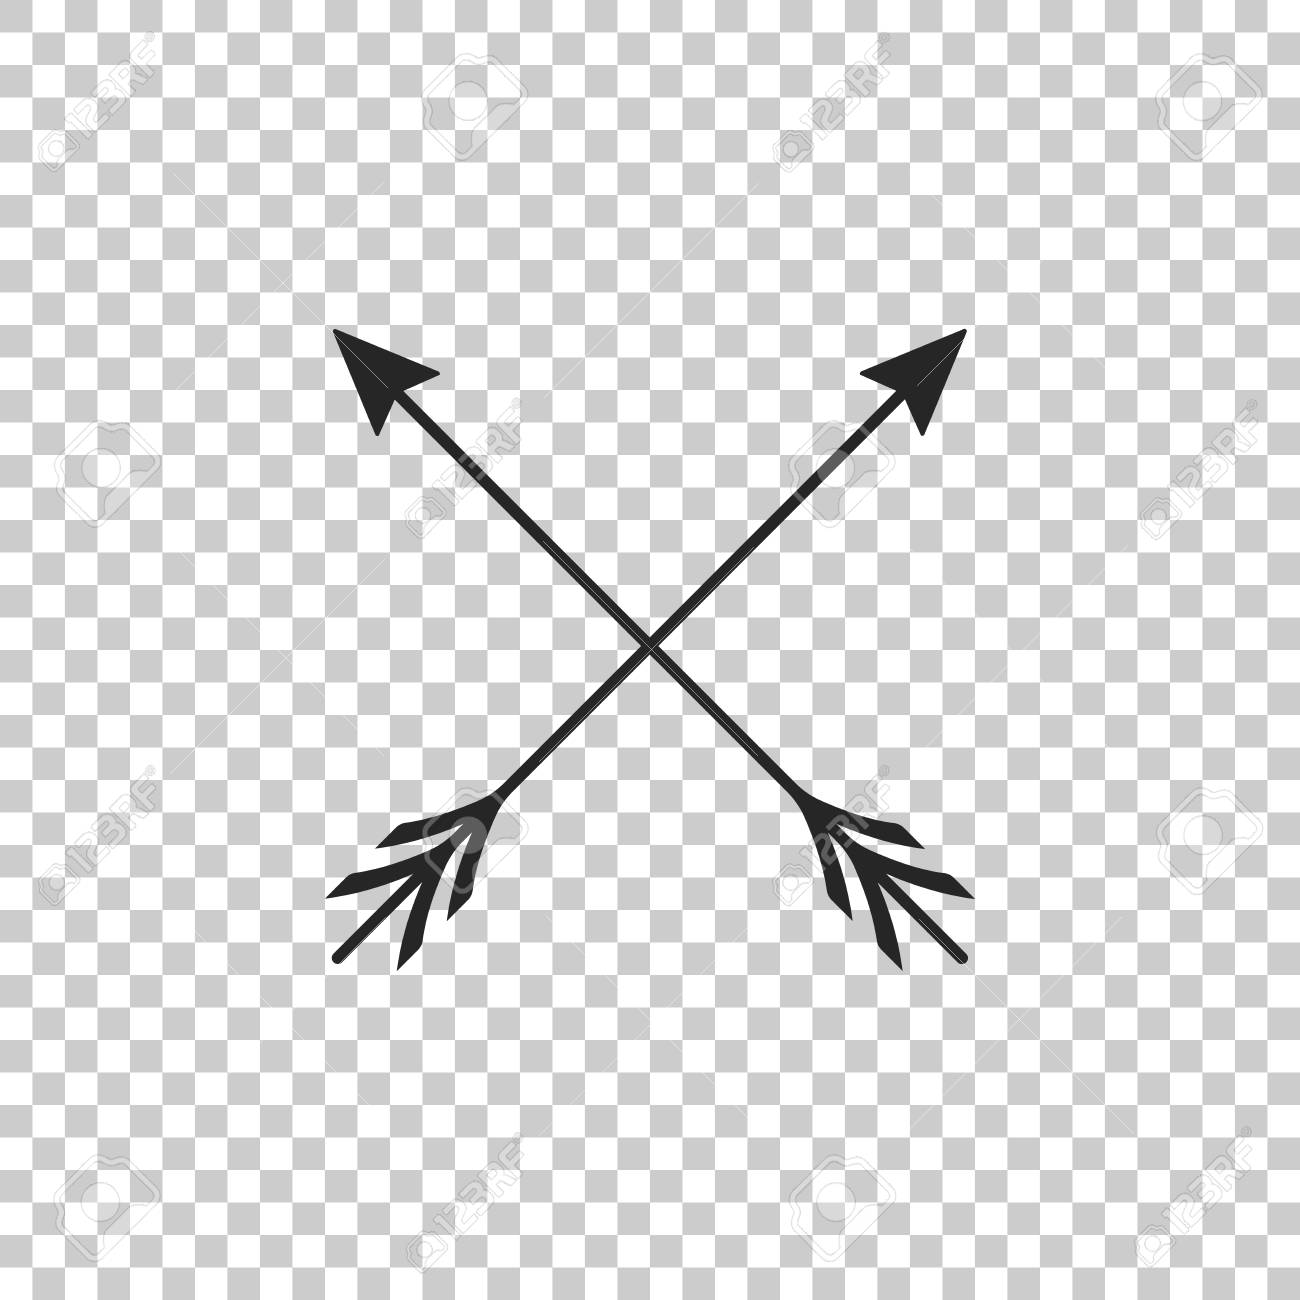 Crossed Arrows Icon Isolated On Transparent Background Flat Design Vector Illustration Royalty Free Cliparts Vectors And Stock Illustration Image 124993561